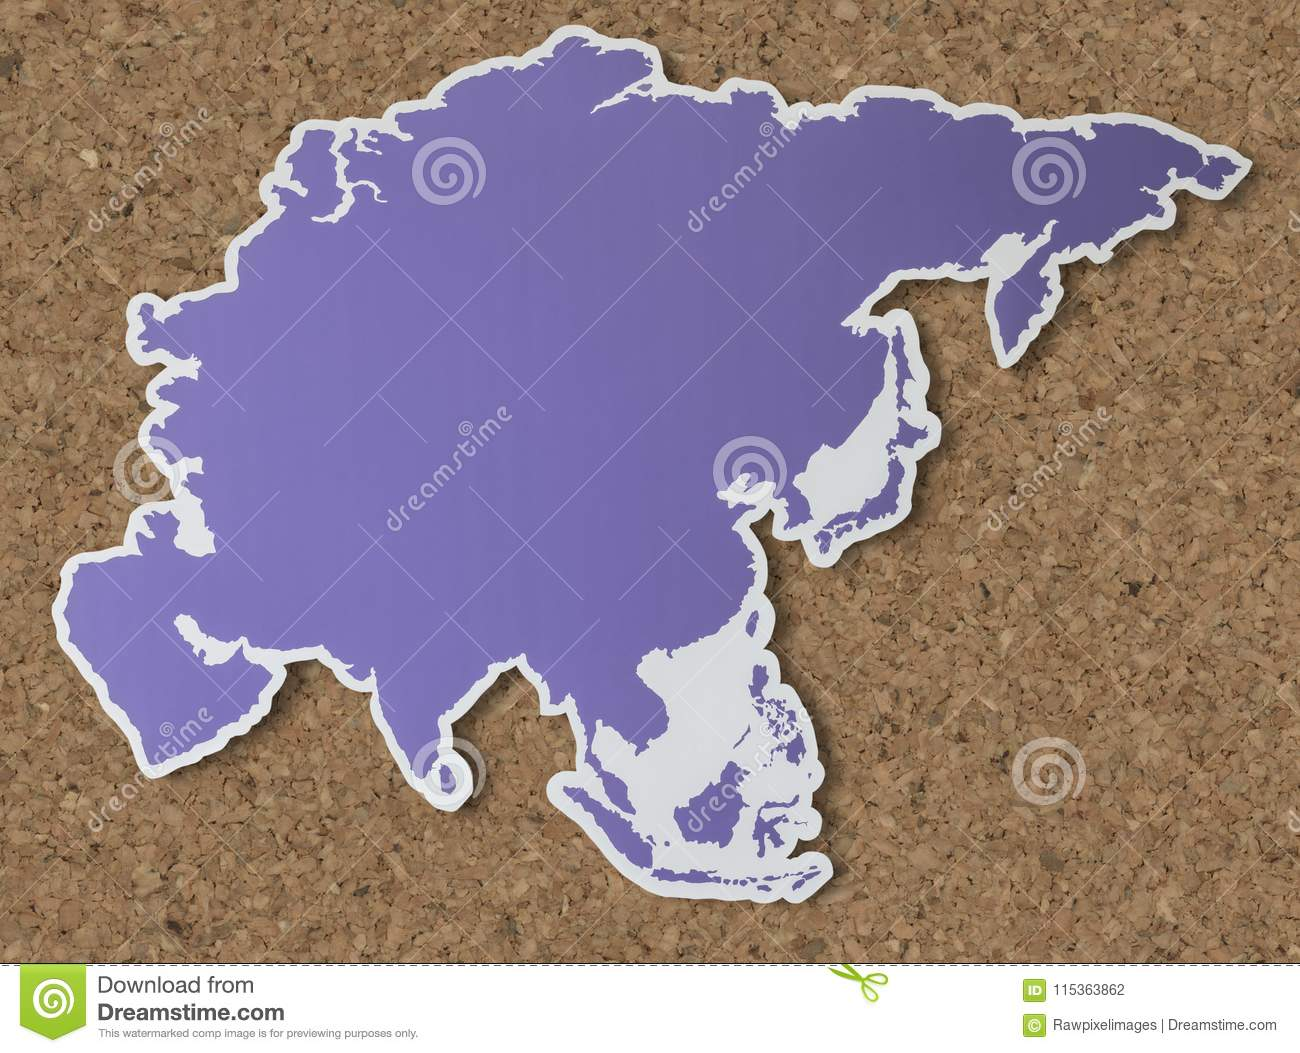 Free Blank Map Of South East Asia Stock Illustration ... on blank map south east asia and russia, blank map of antarctica, blank physical map asia, blank east asia countries, blank middle east map, blank south and southeast asia map, blank map of vietnam only, blank map of malaysia, blank map of south east asia and australia, the maps of asia only,